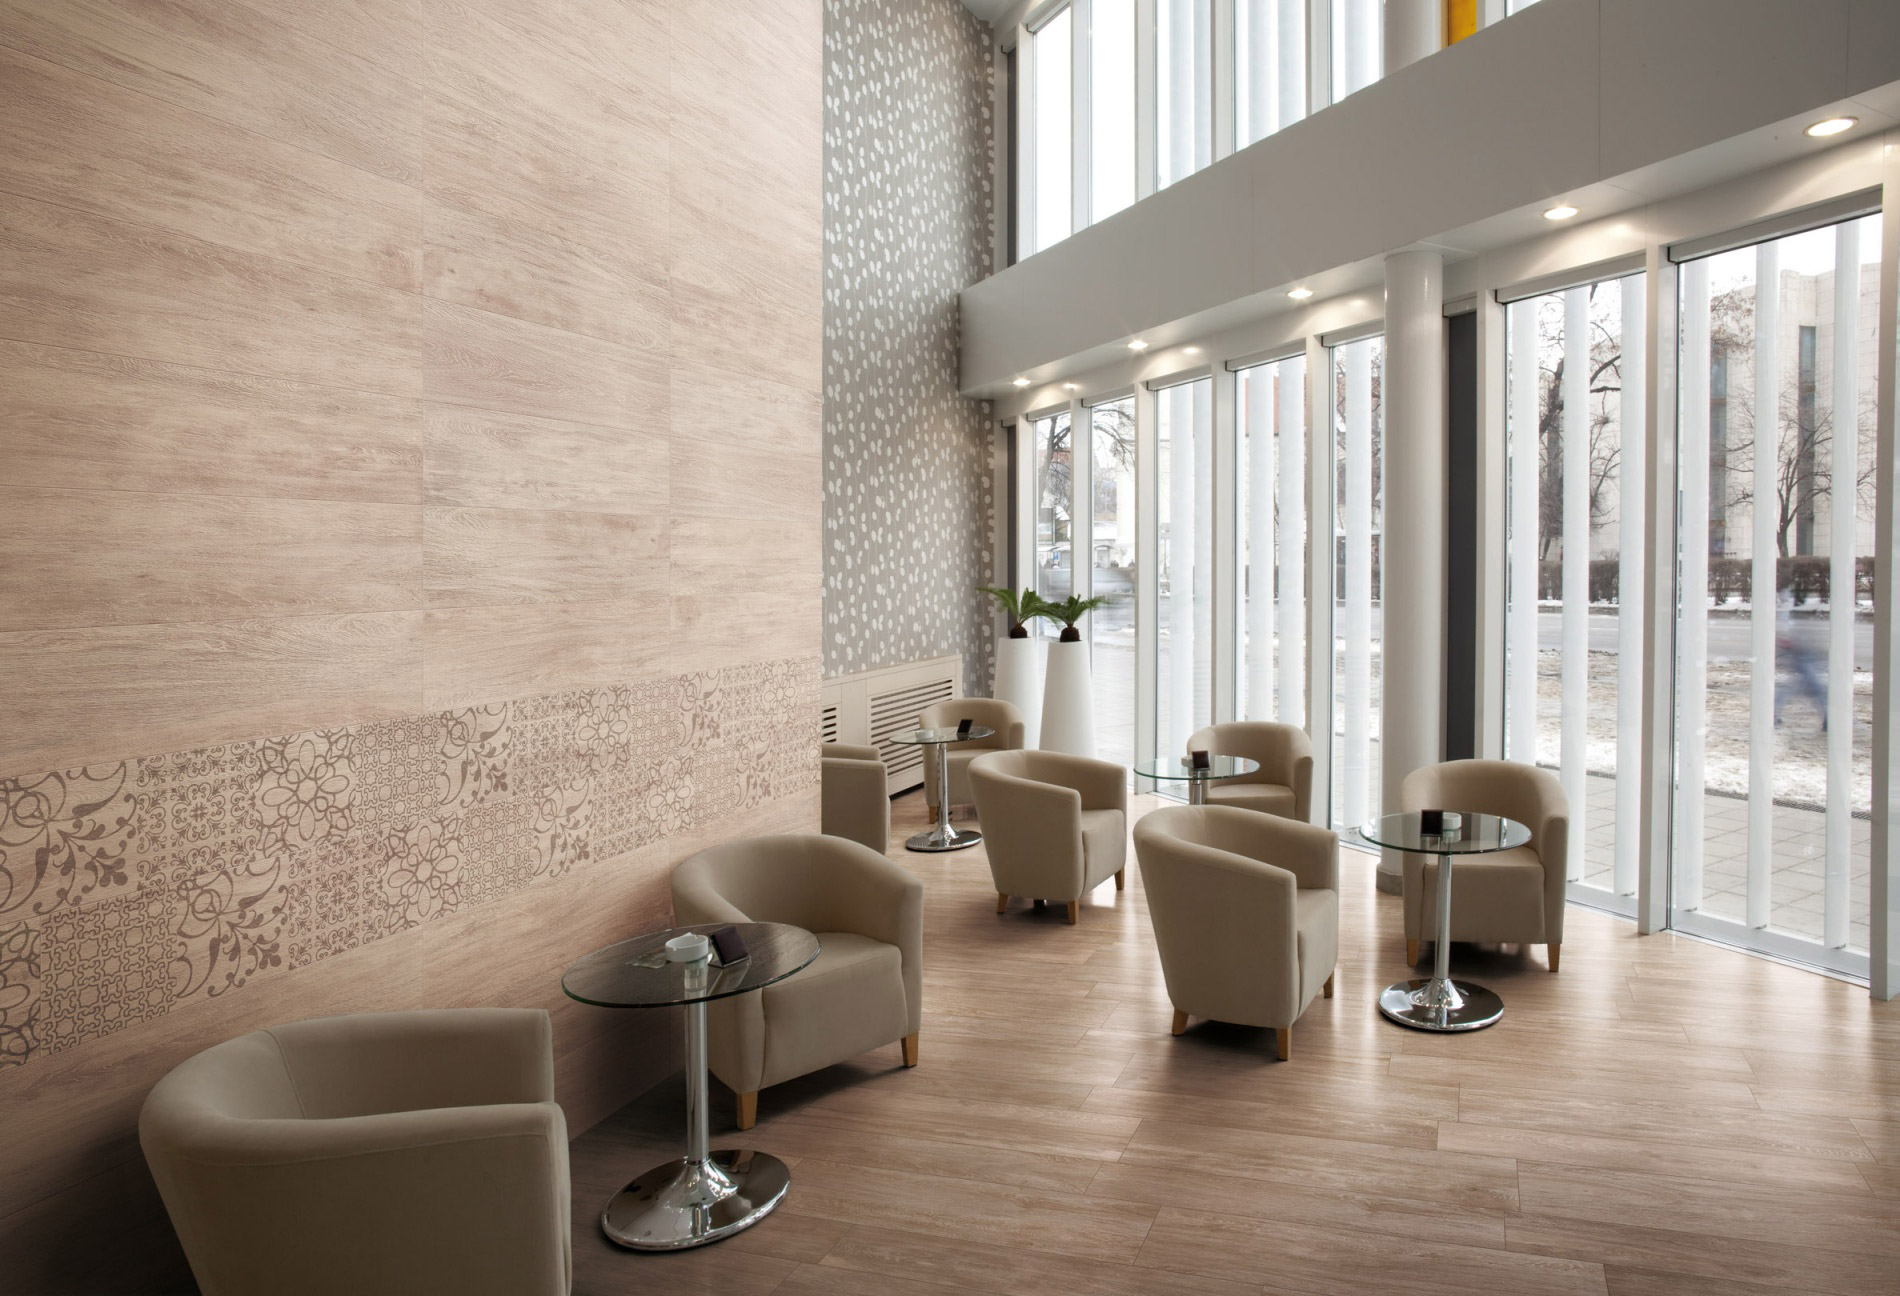 Hotels bars restaurants porcelain tiles for Aubade carrelage